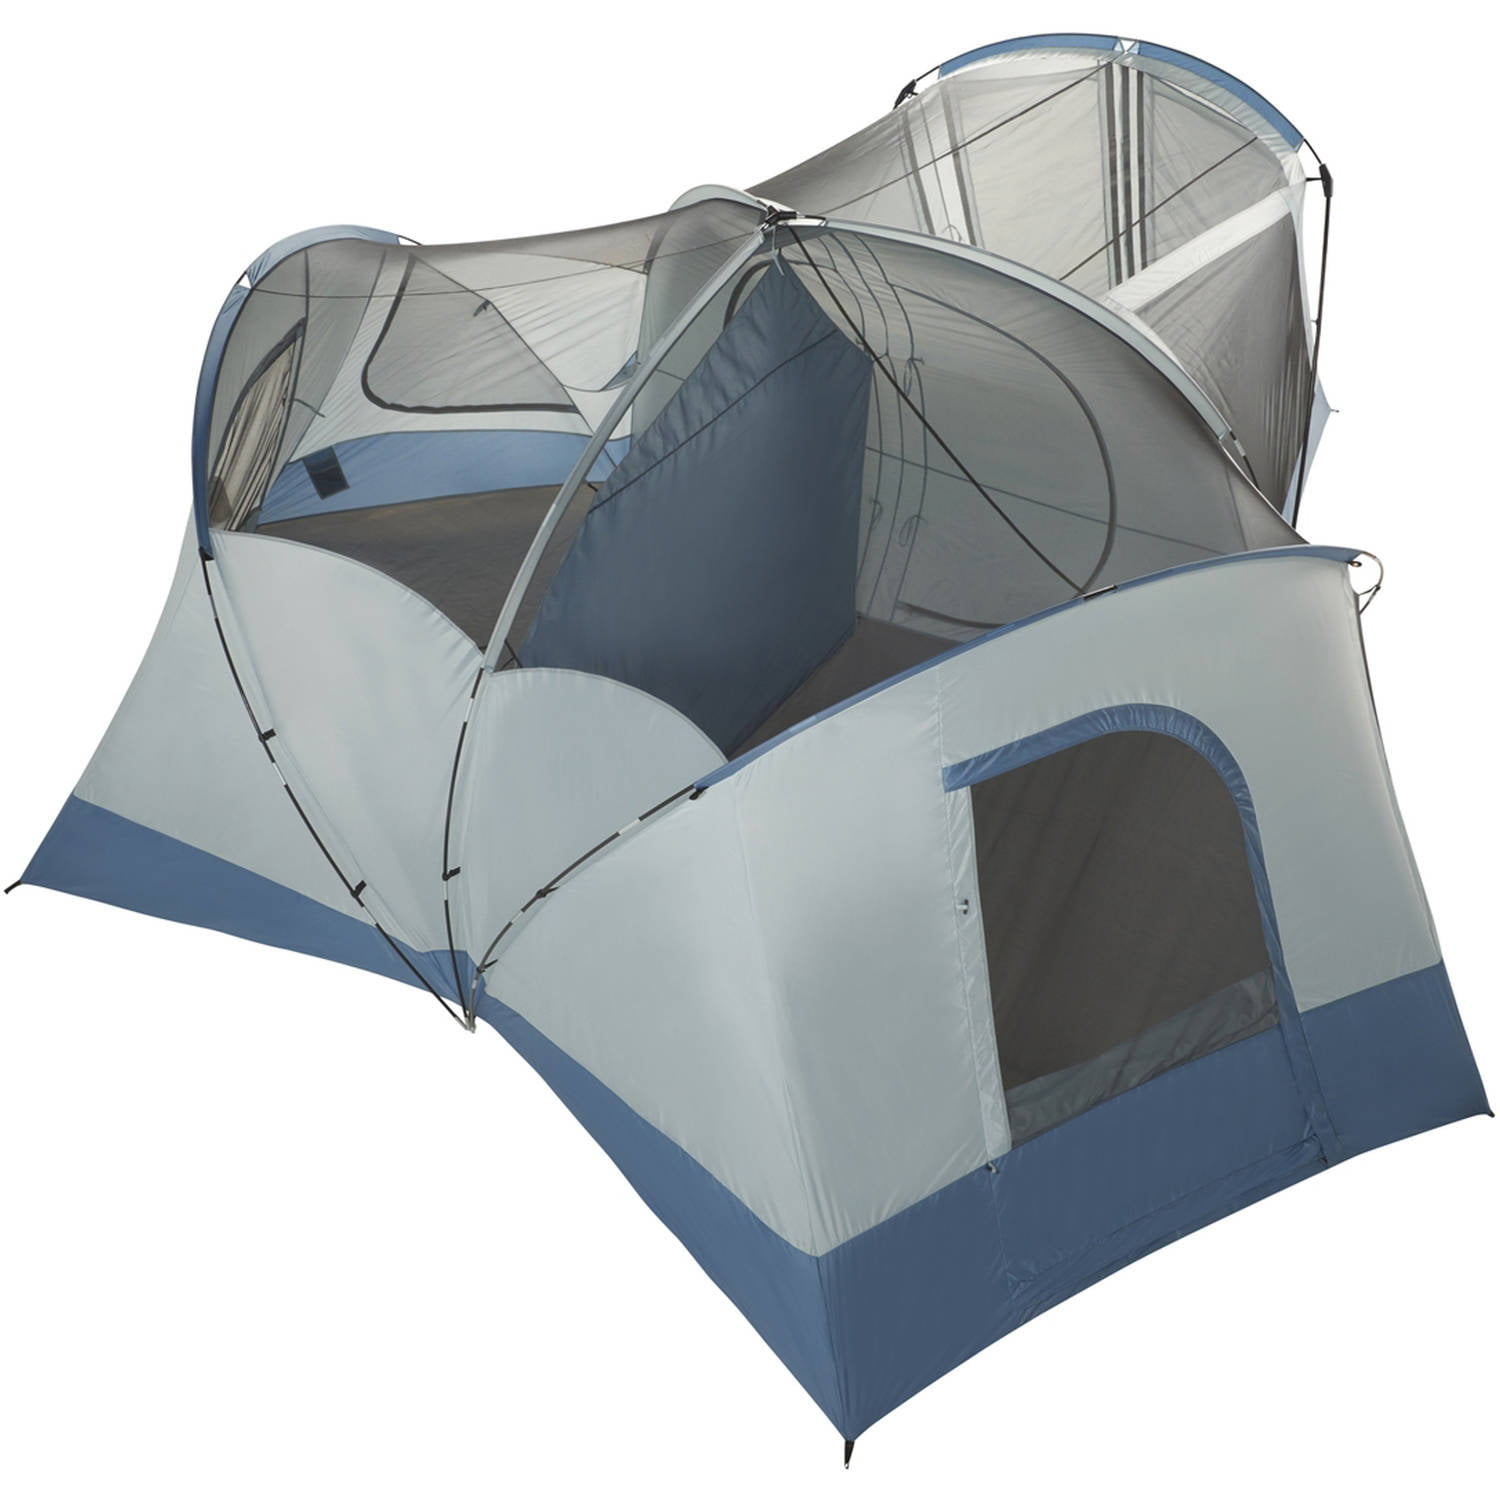 Ozark Trail 14-Person Family Tent with Screen Porch | eBay